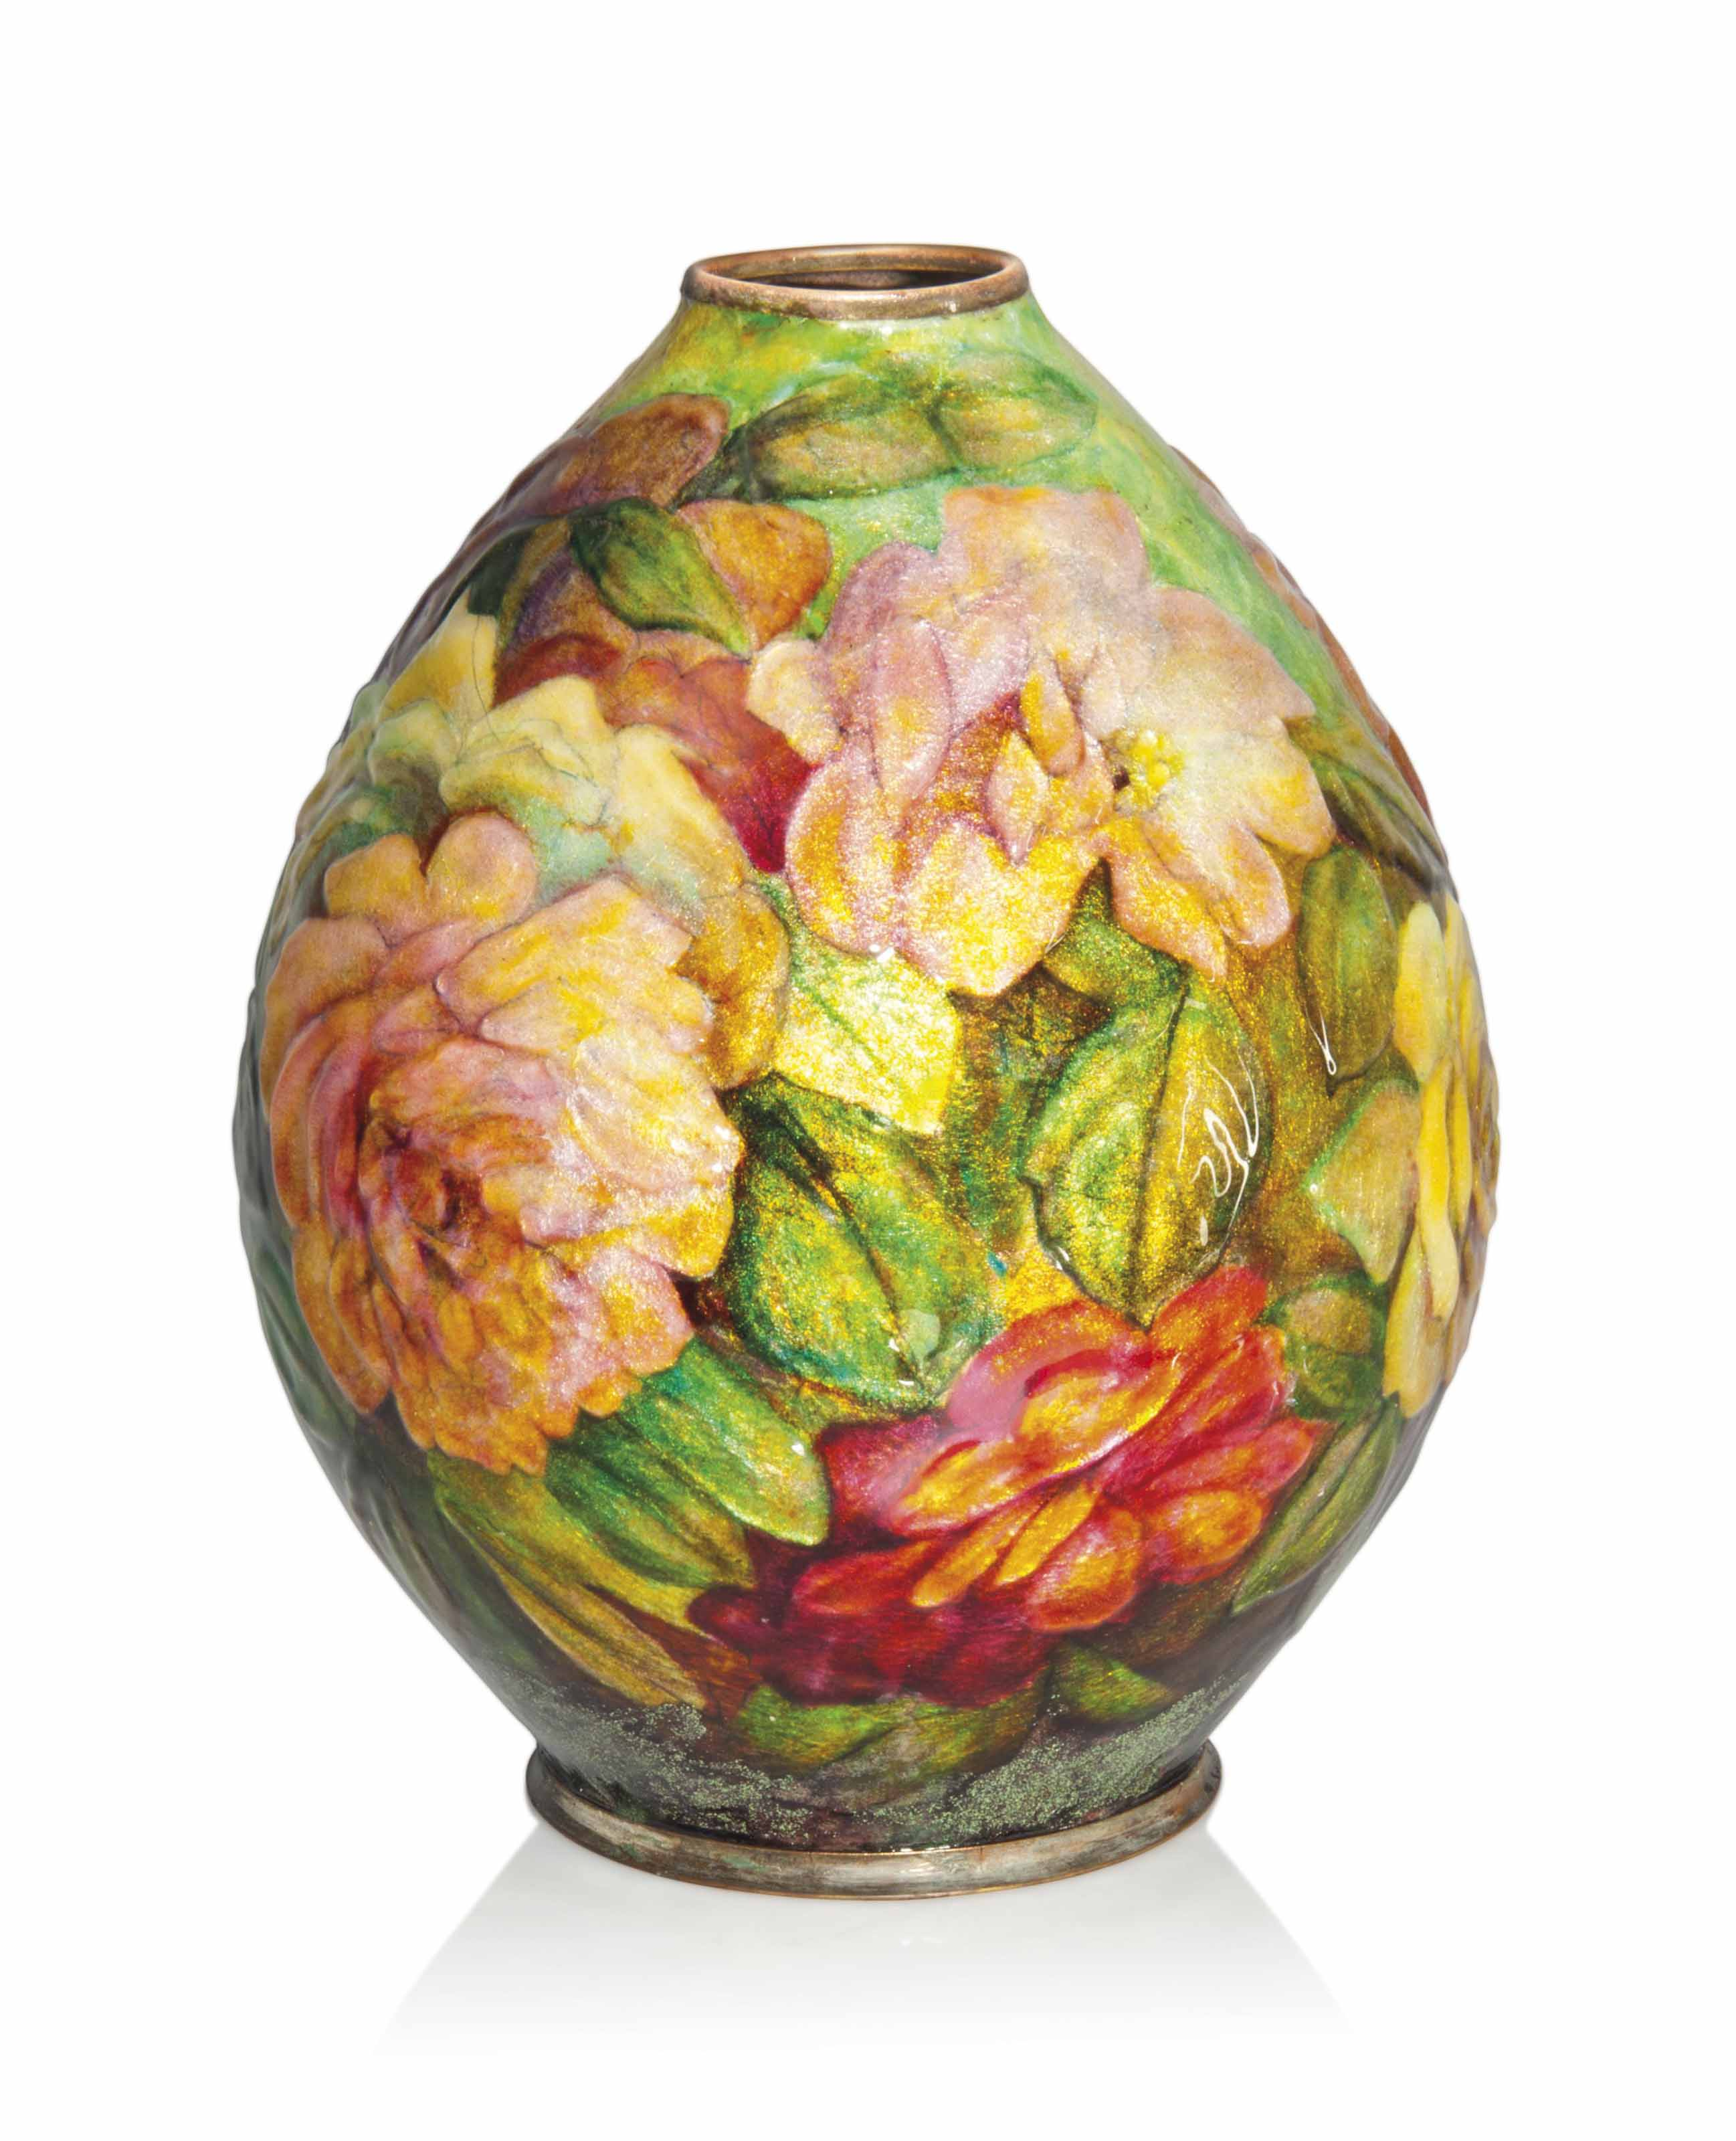 A CAMILLE FAURÉ (1874-1956) POLYCHROME ENAMELLED COPPER VASE DECORATED WITH FLOWERS AND LEAVES